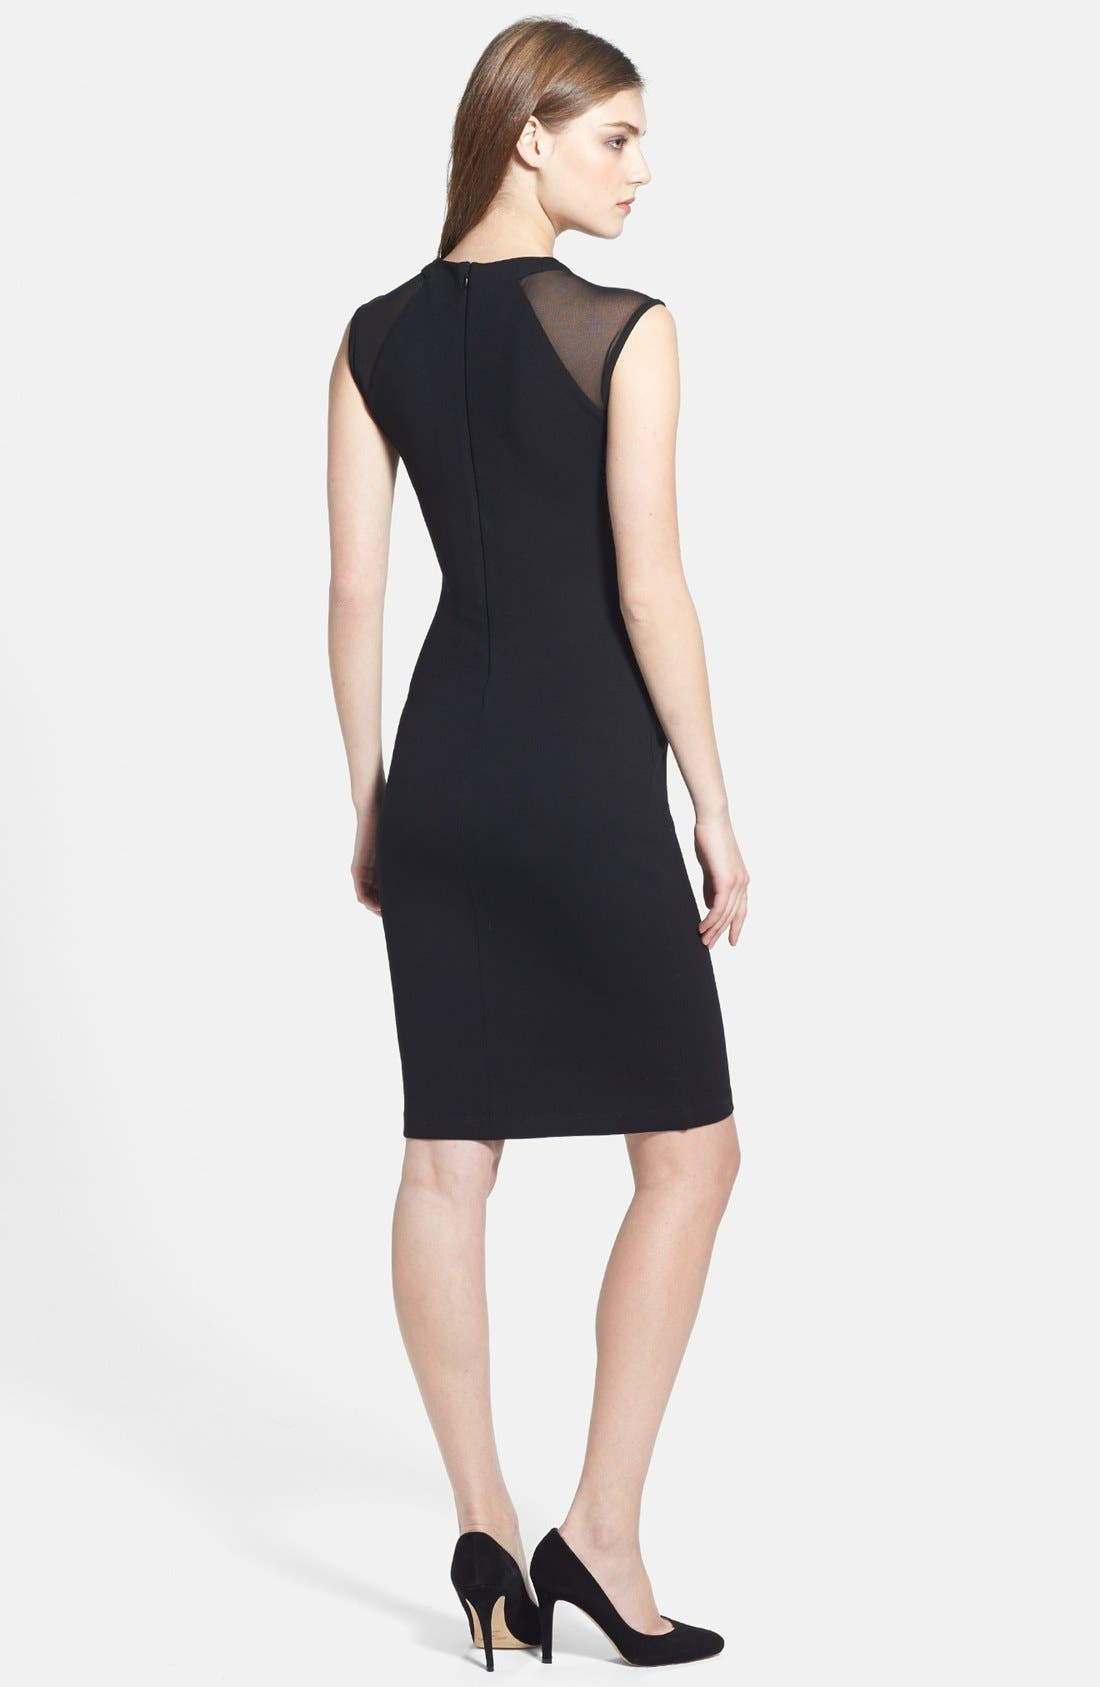 FRENCH CONNECTION,                             'Viven' Mesh Paneled Sheath Dress,                             Alternate thumbnail 2, color,                             001